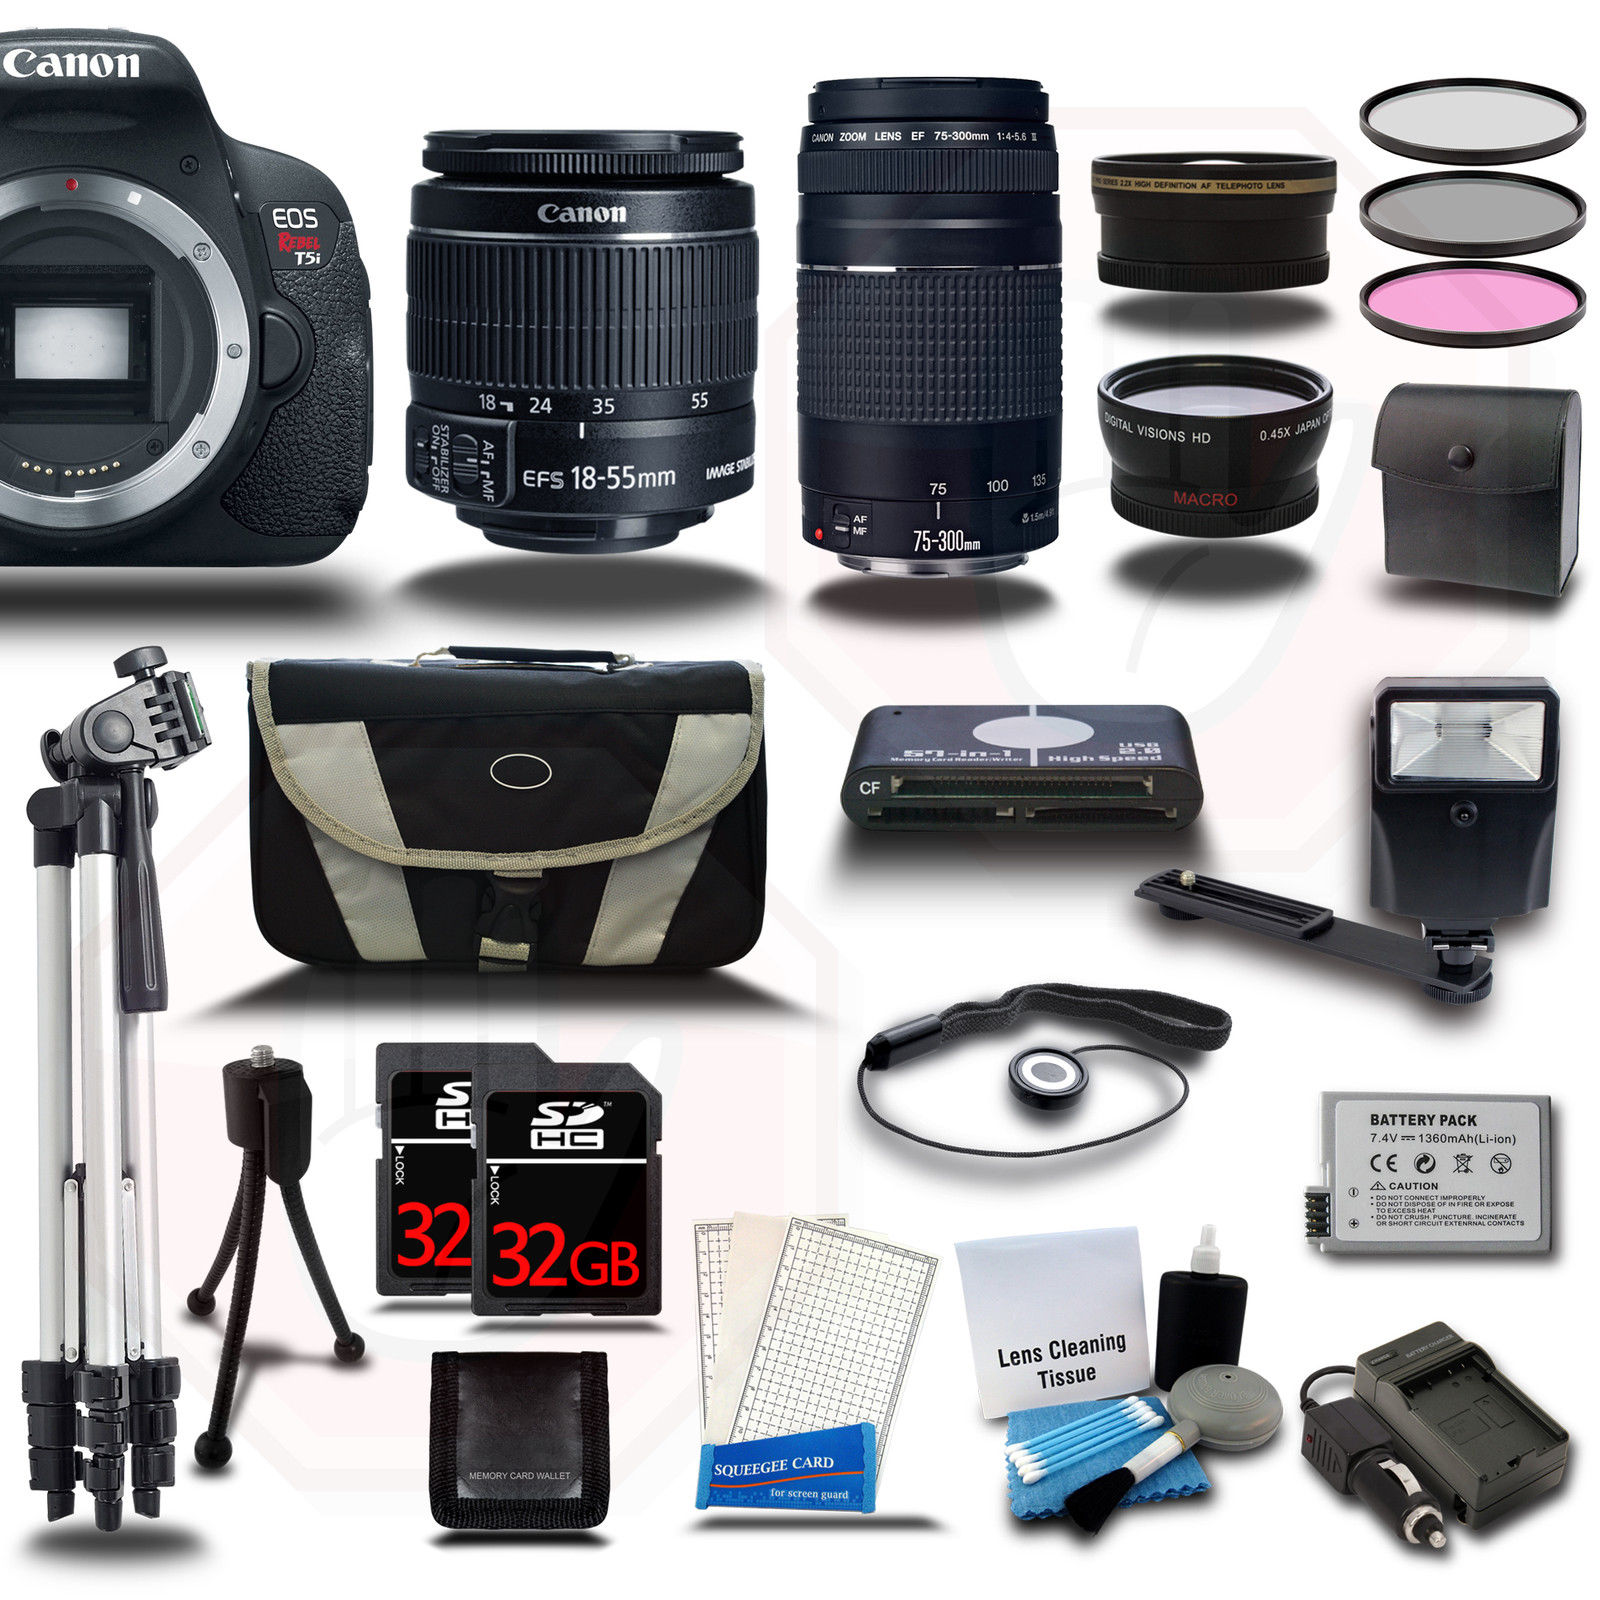 Canon EOS T5i kit deals